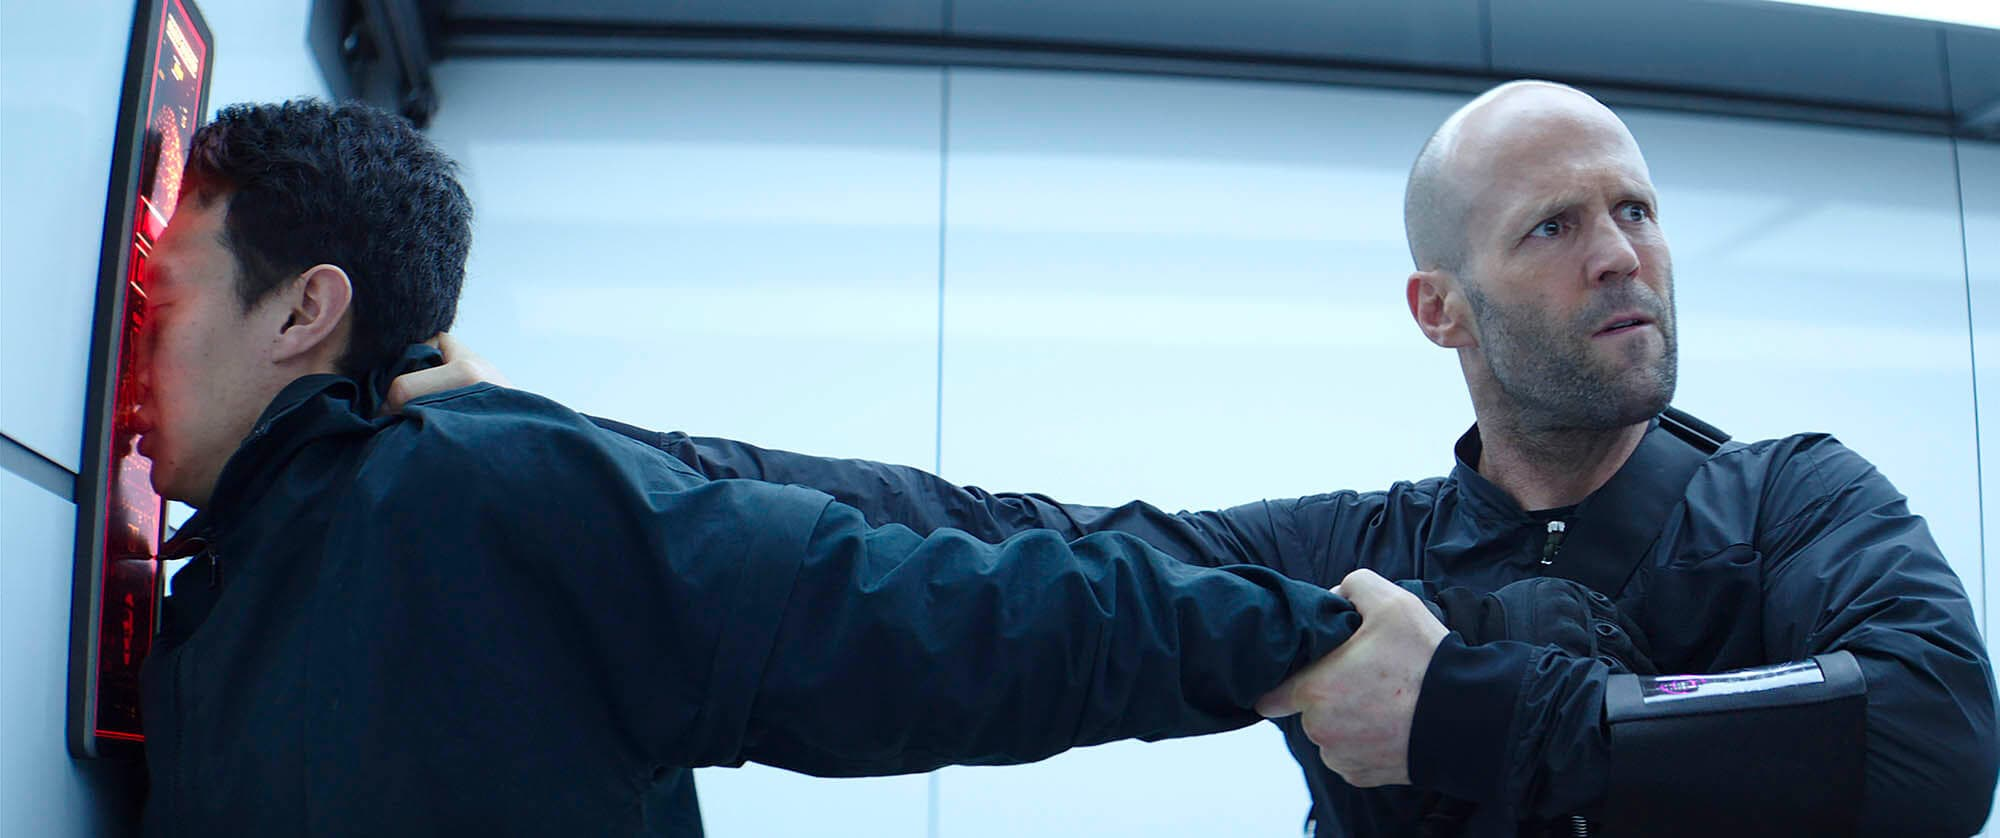 Fast & Furious Presents: Hobbs & Shaw | Trailer & Movie Site